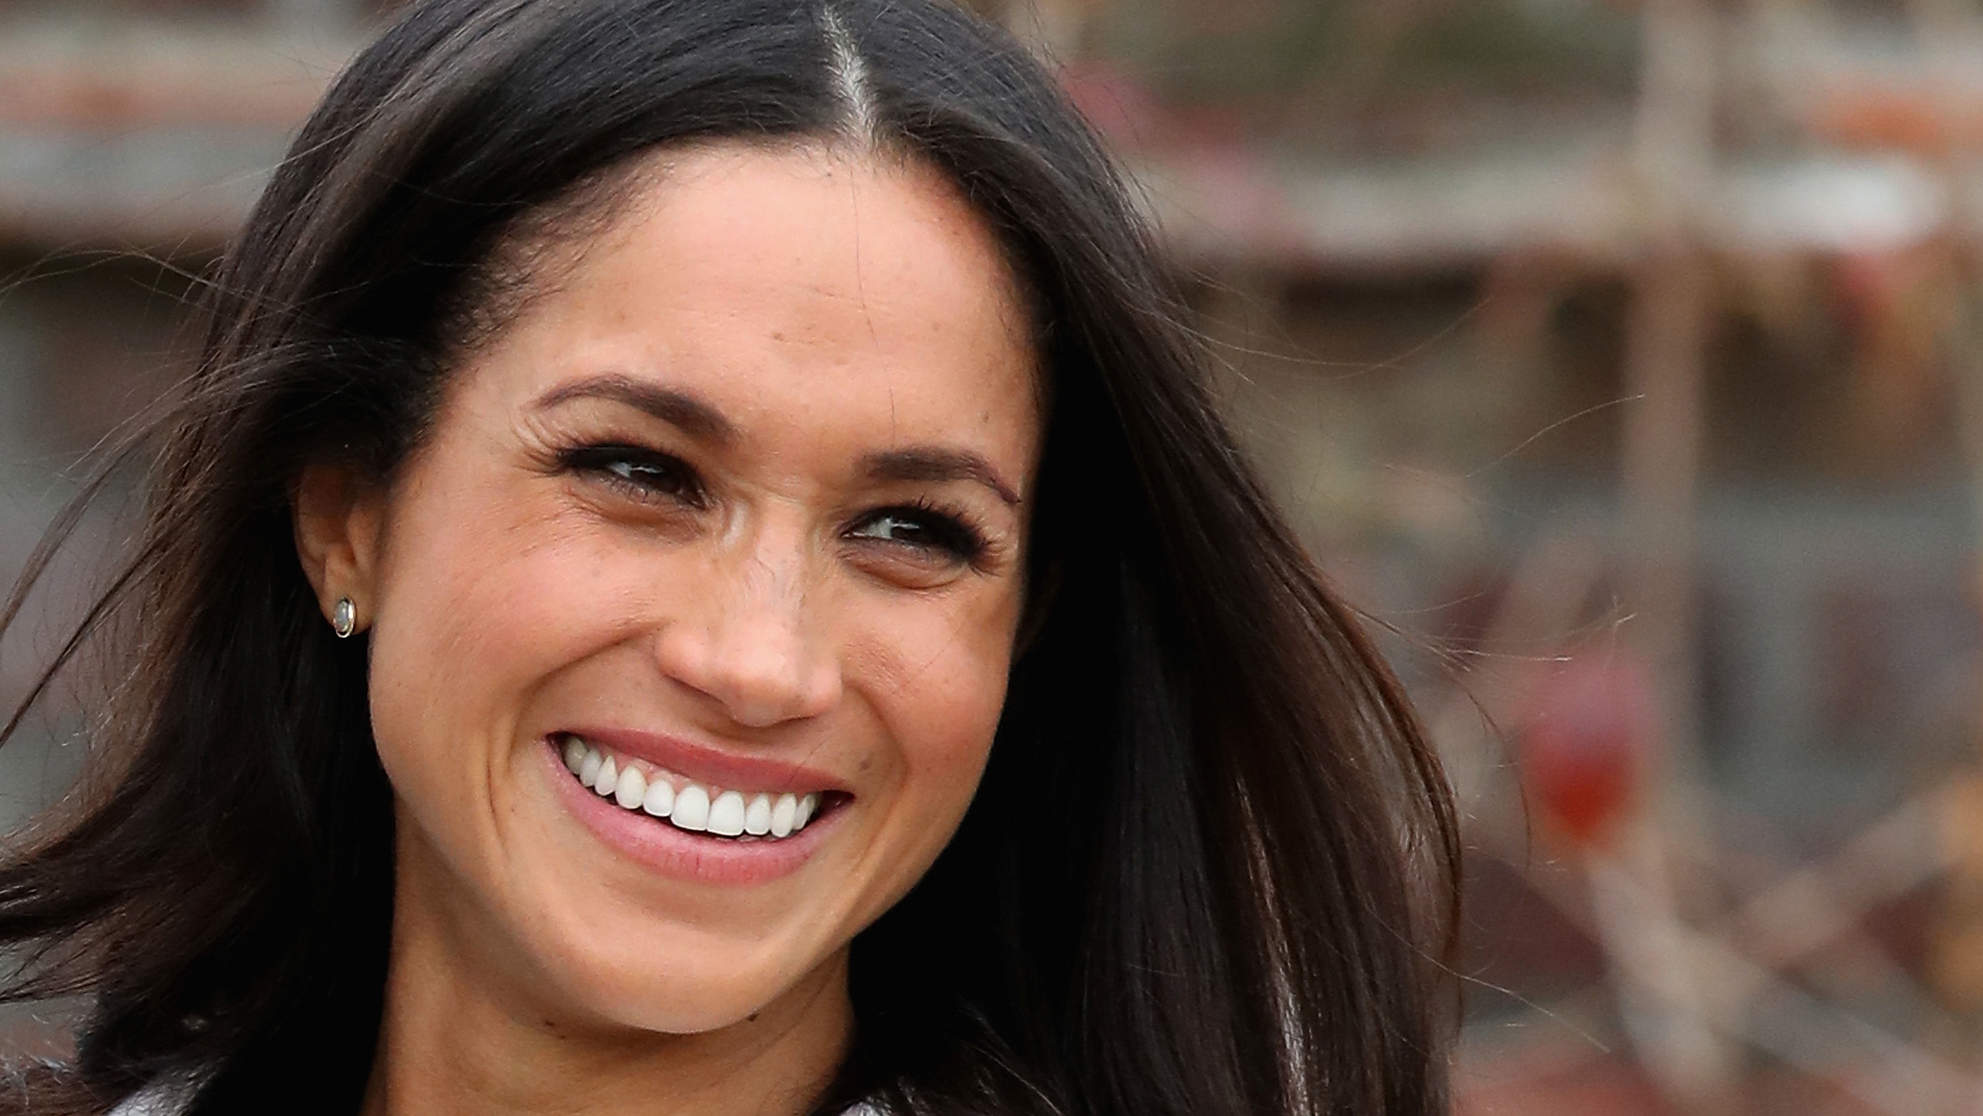 Why Meghan Markle's Wedding Makeup Will Showcase Her Natural Freckles